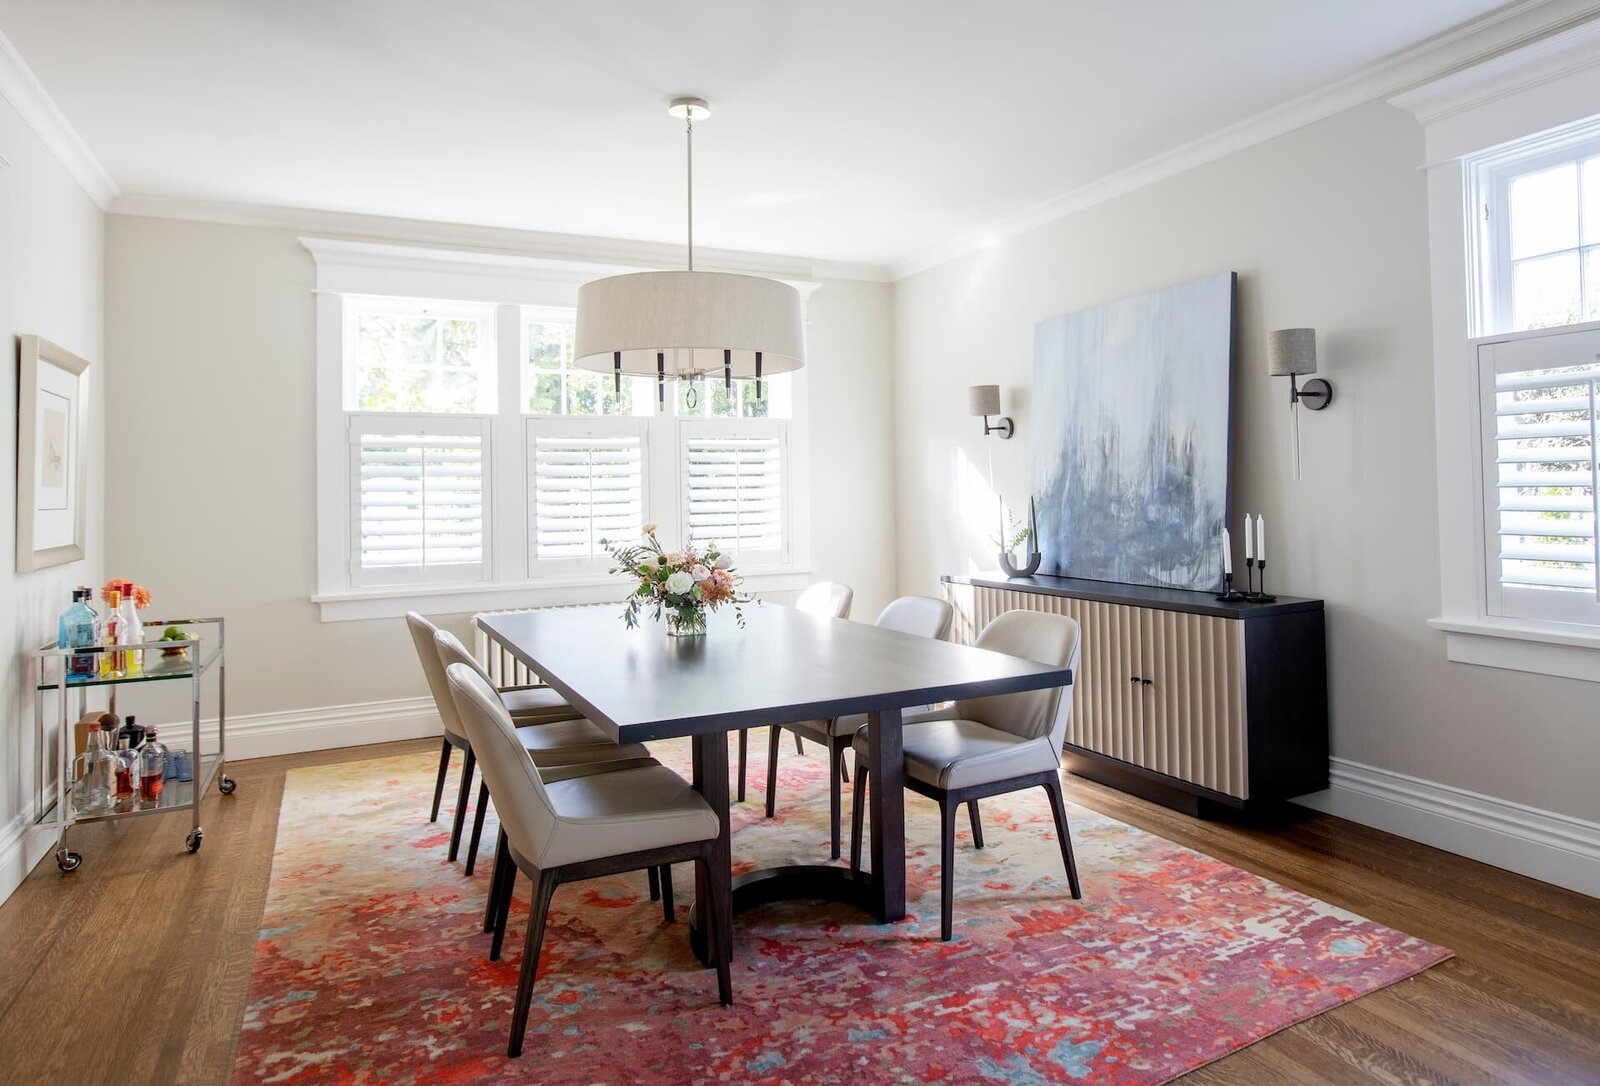 Granville Street l Dining Room l Custom Alexis Dining Table on Bright Colour Rug with Traditional Chandelier and Modern Sideboard